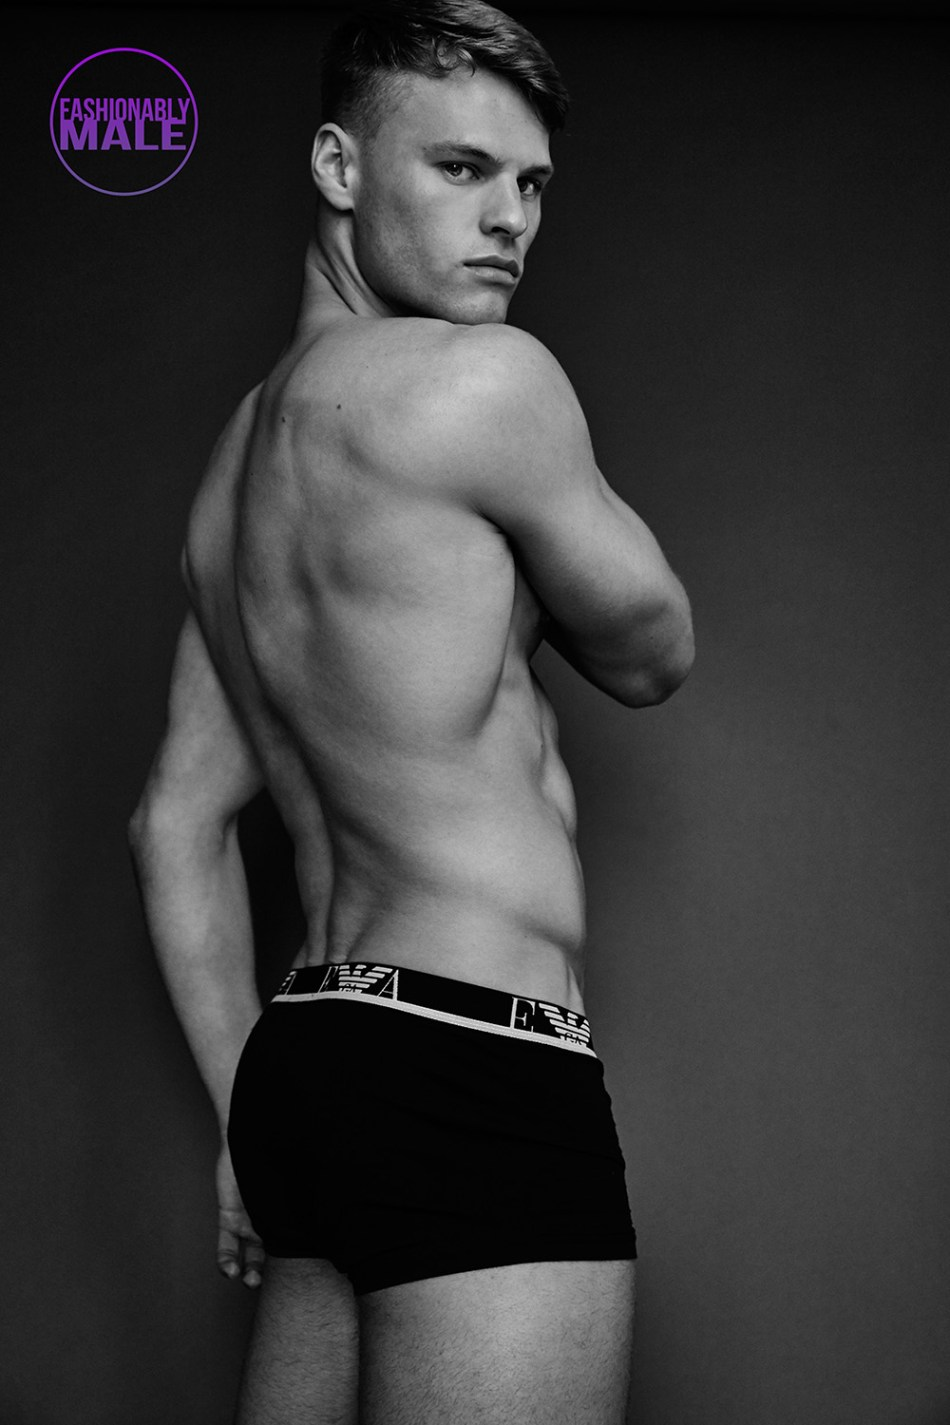 When You Look Up for a Picture-Perfect: Josh Kempton by Jose Pope